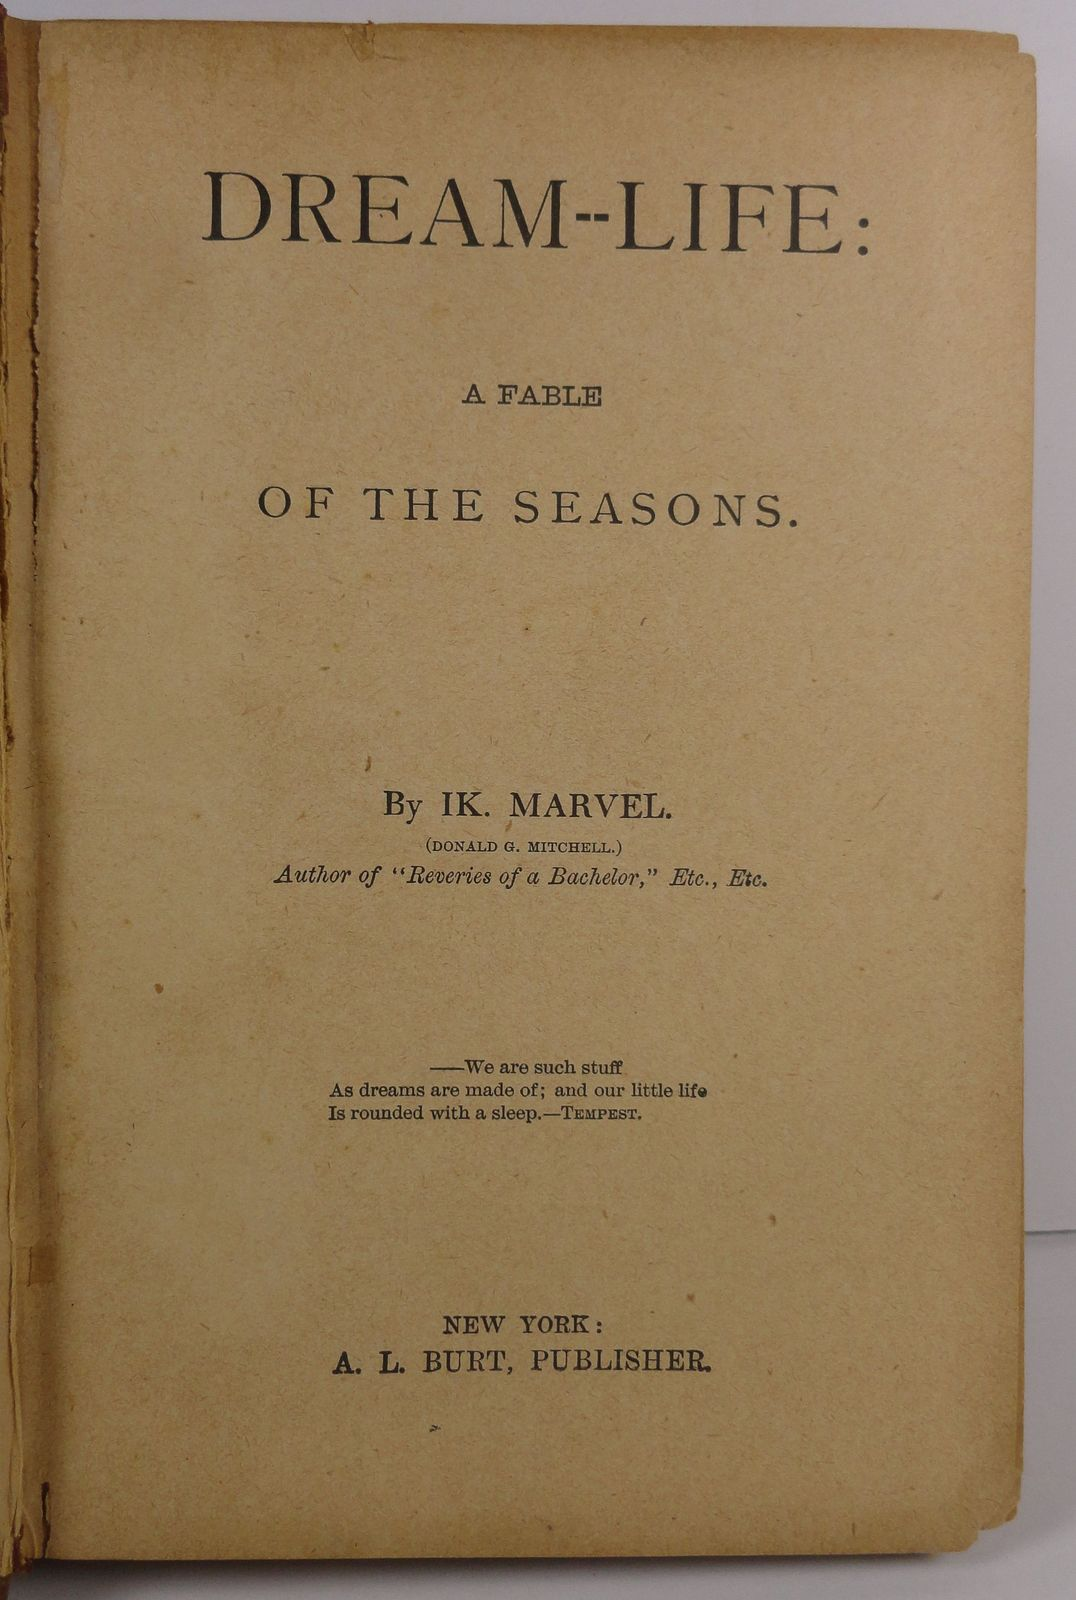 Dream Life A Fable of the Seasons by IK Marvel